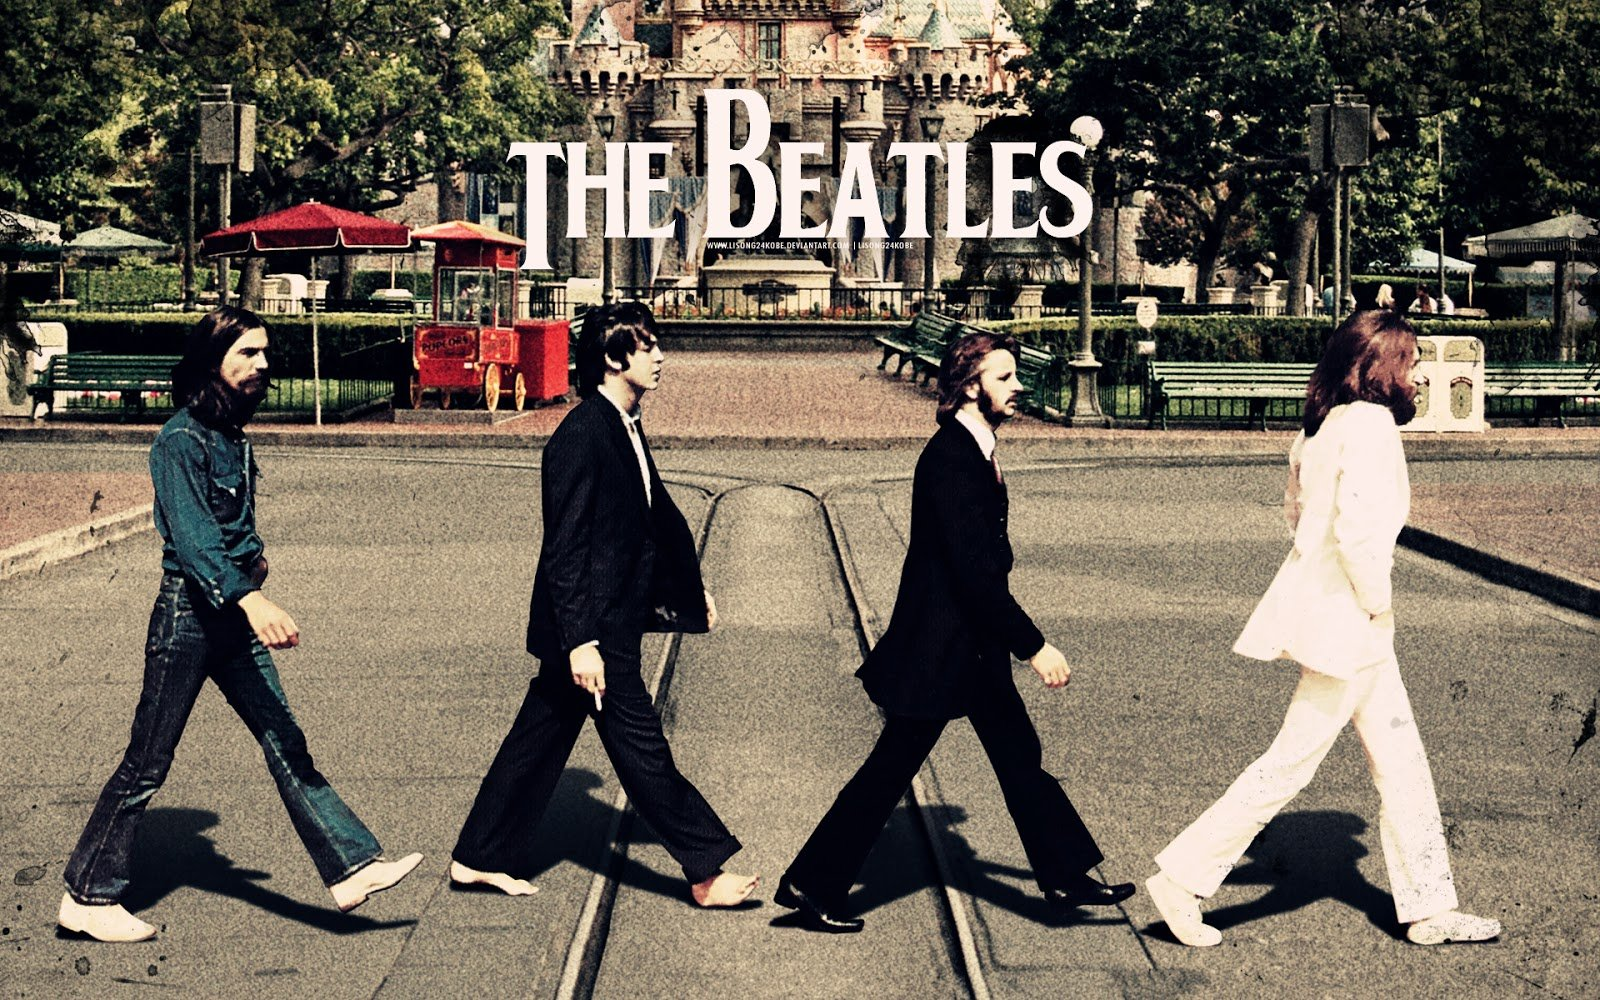 La vida sin musica seria un error : The Beatles